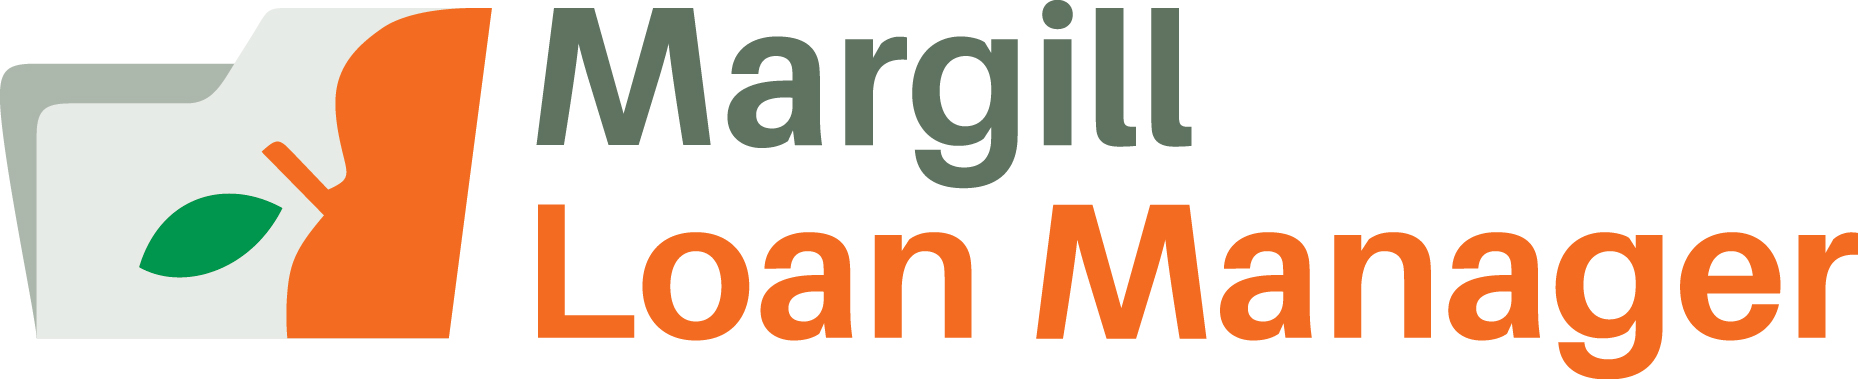 Margill Loan Servicing software